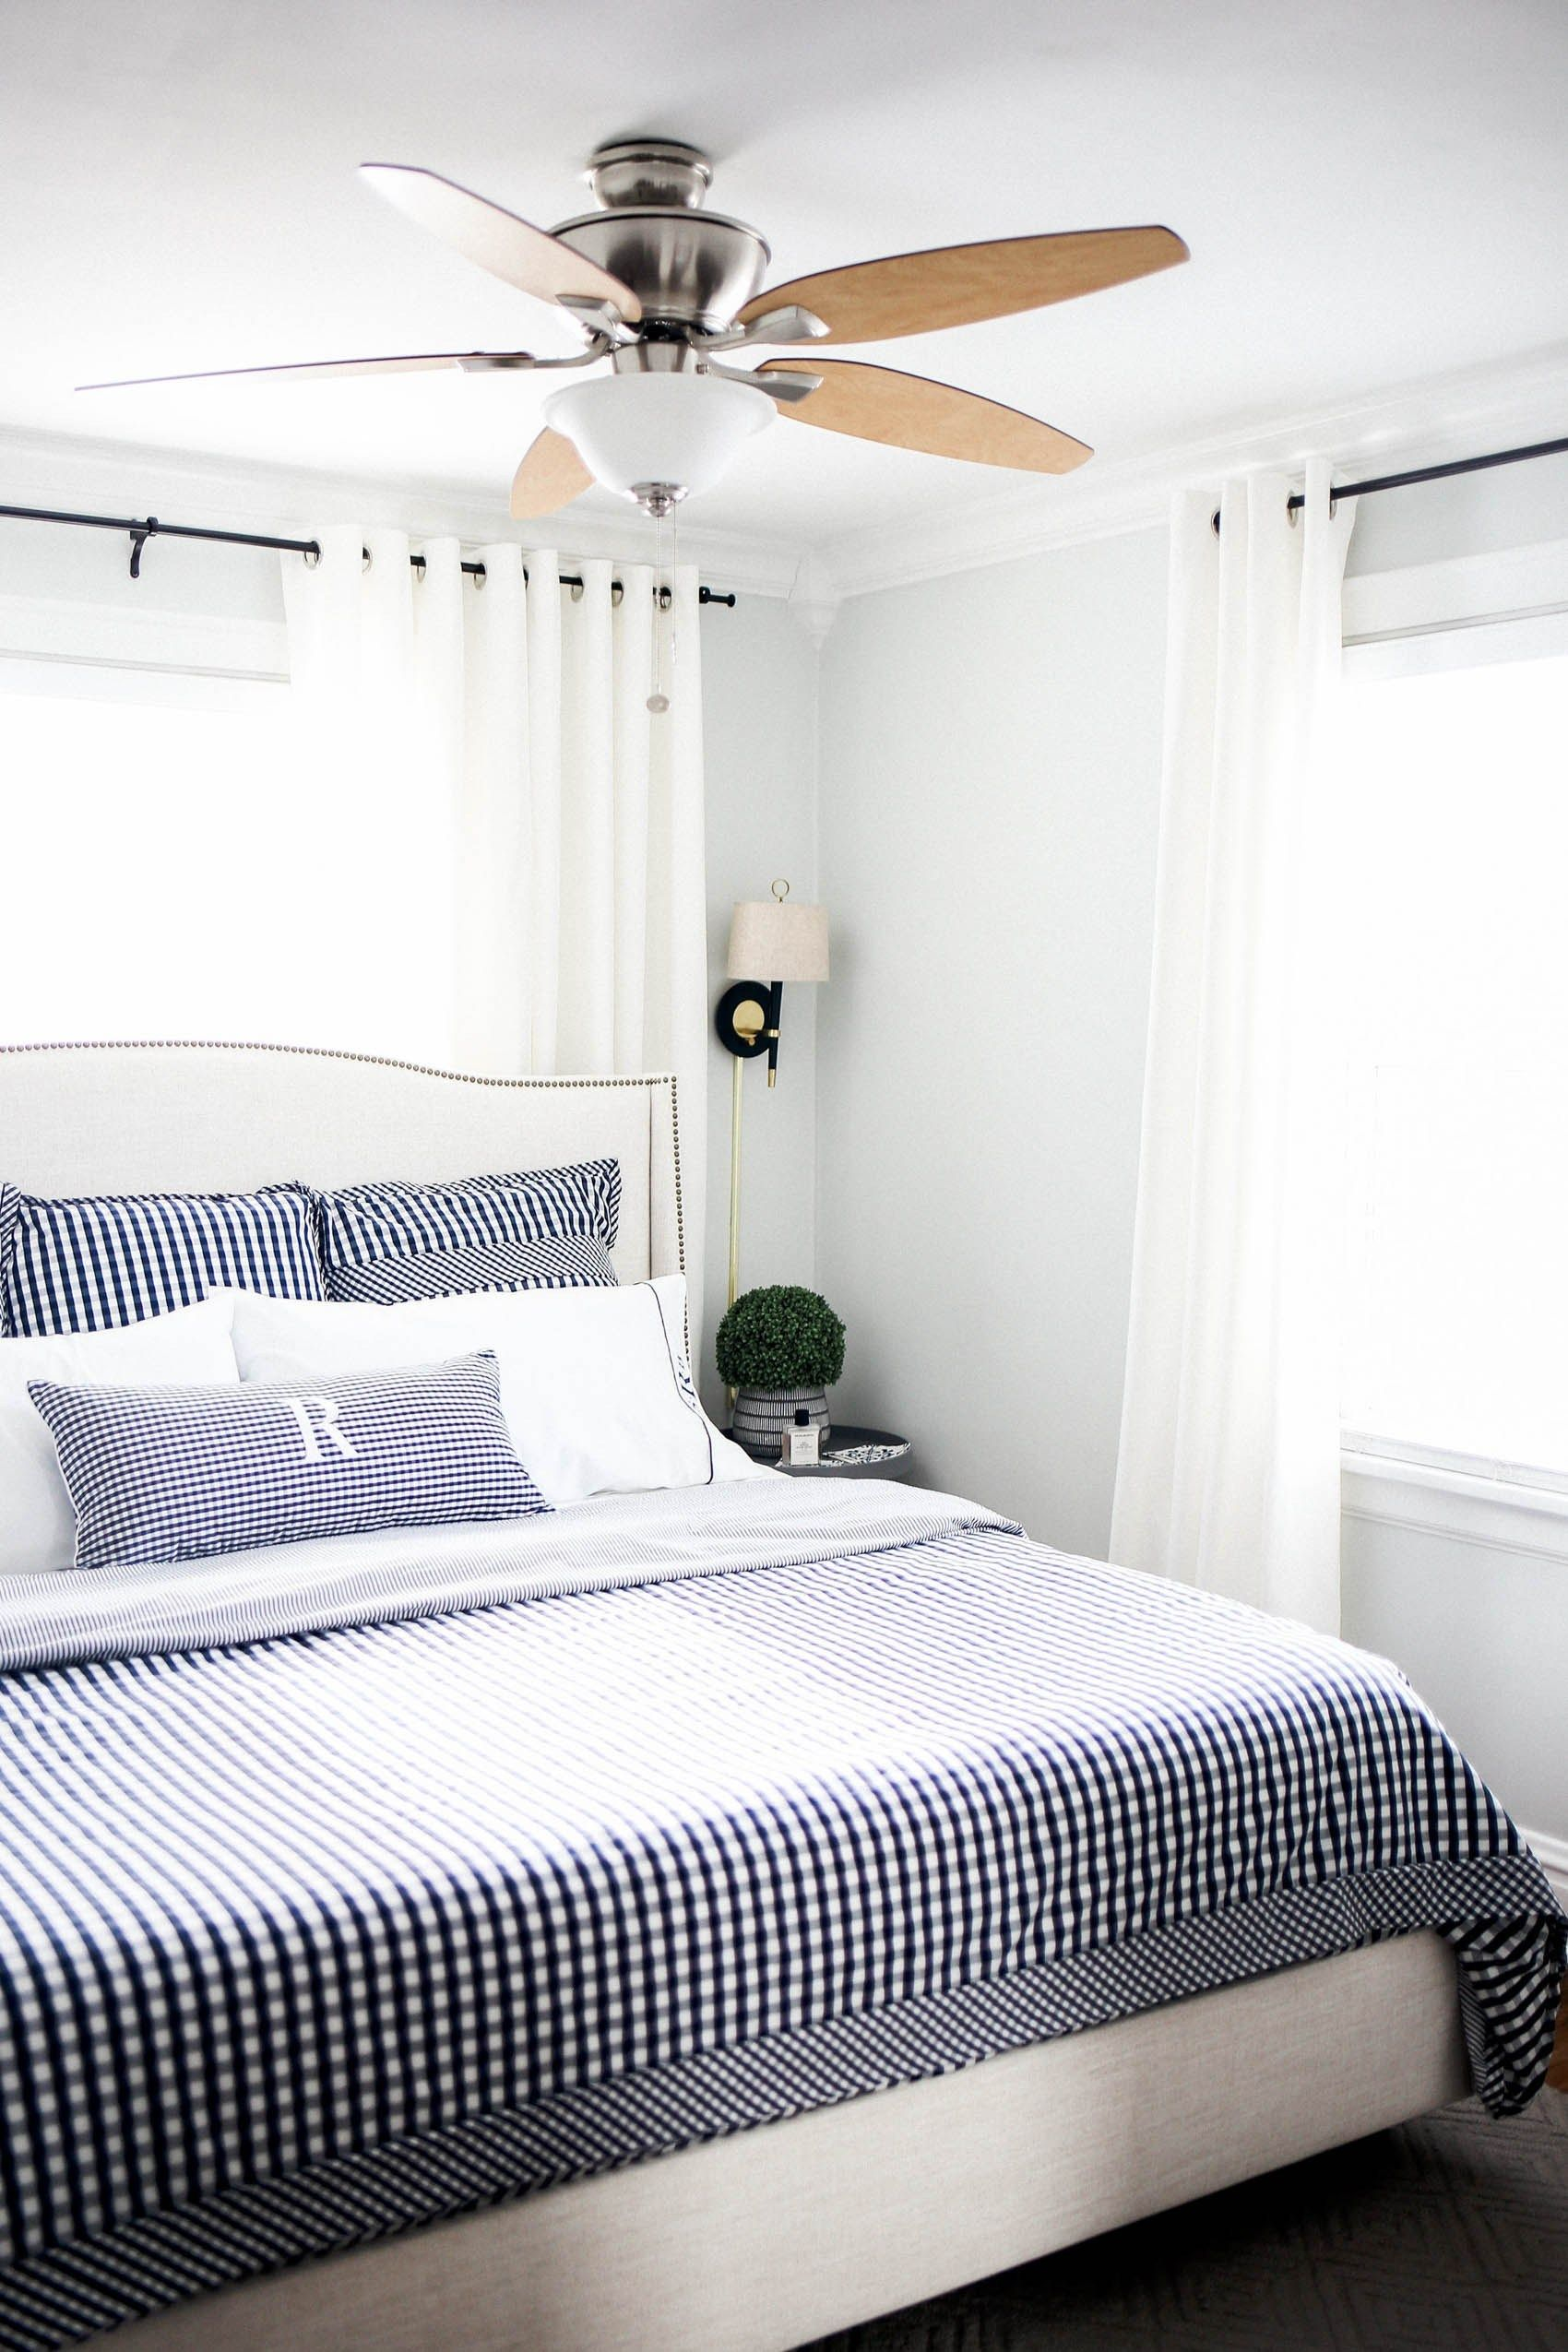 King Size Bed In Small Room